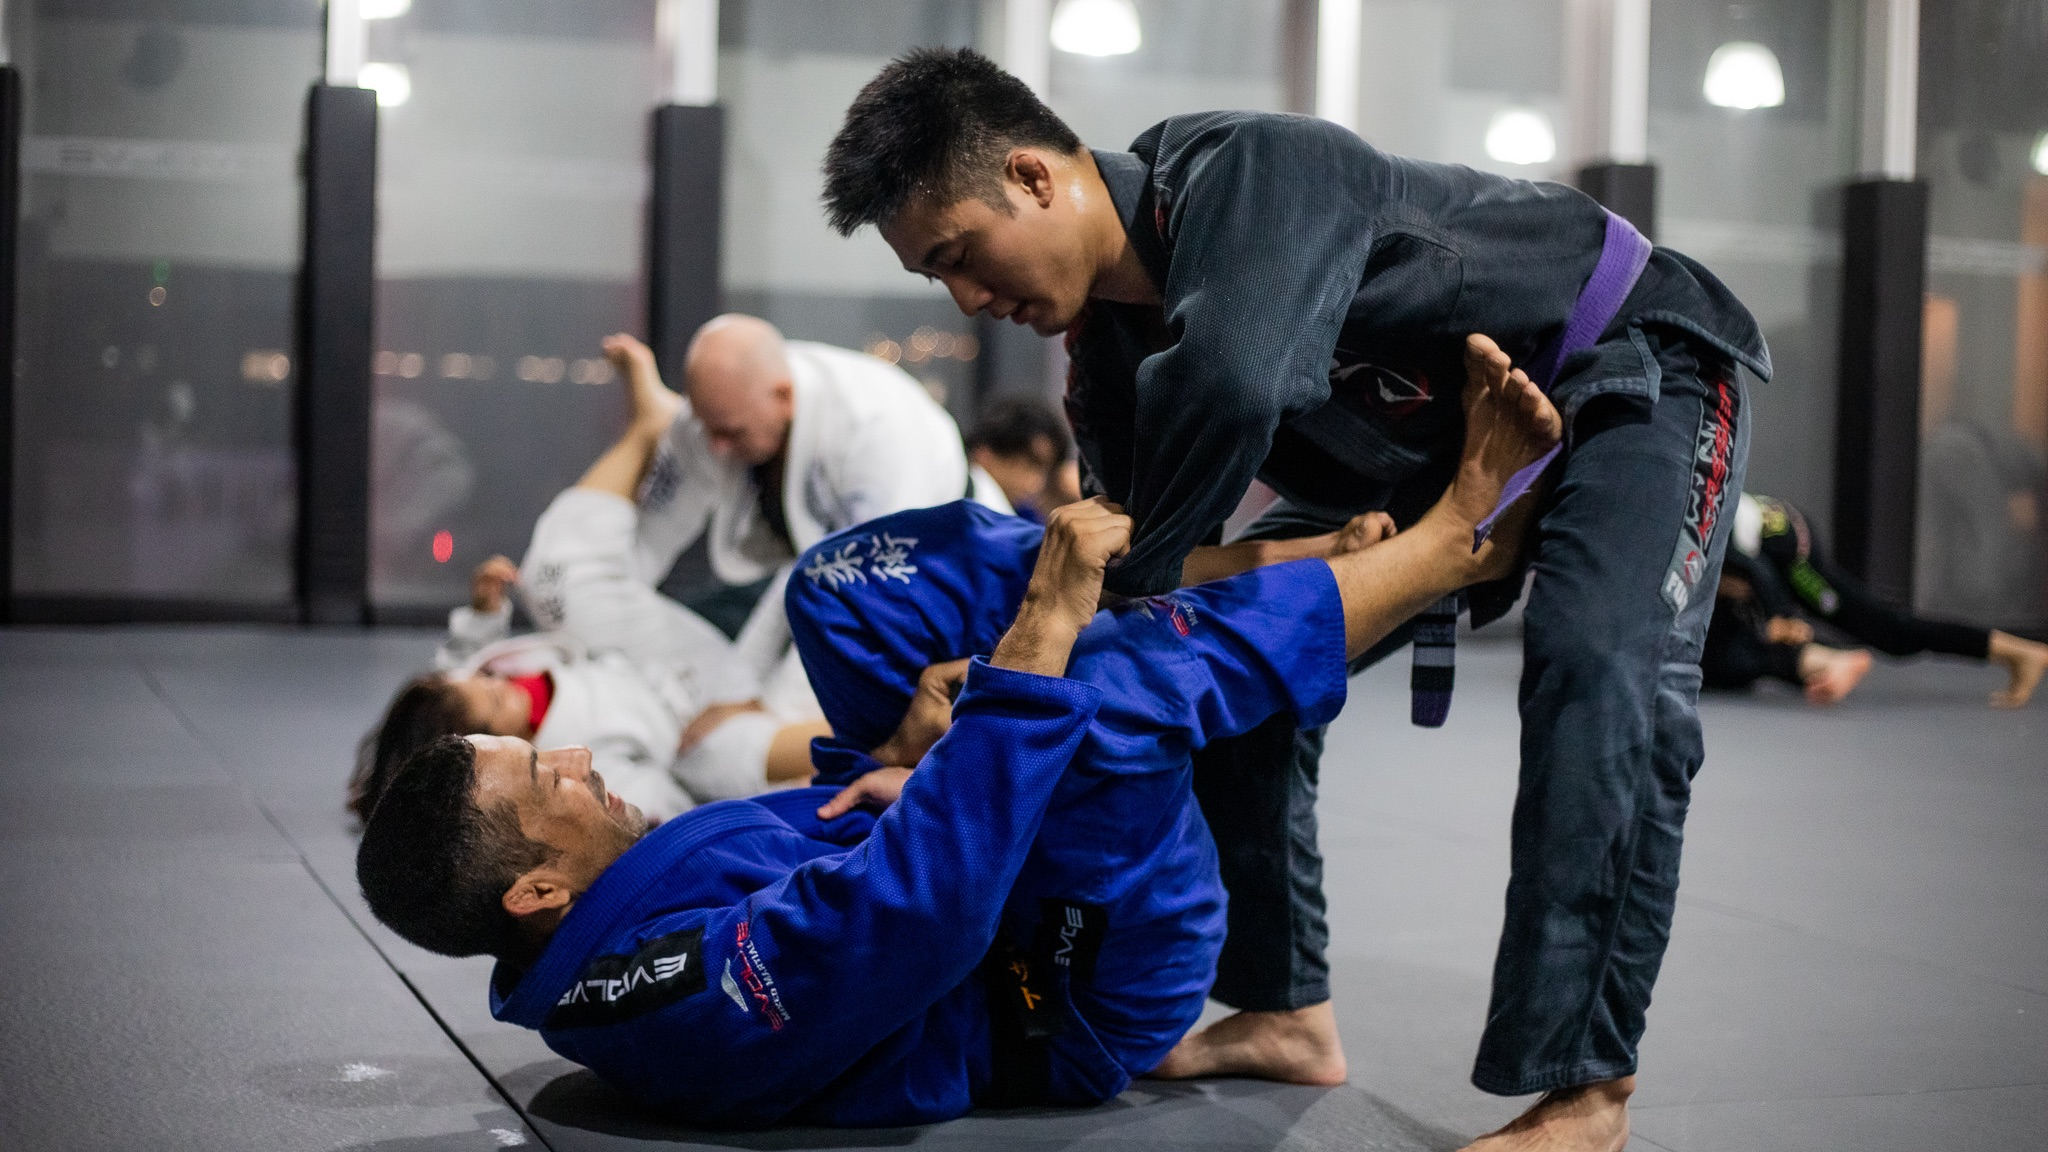 BJJ self-defense